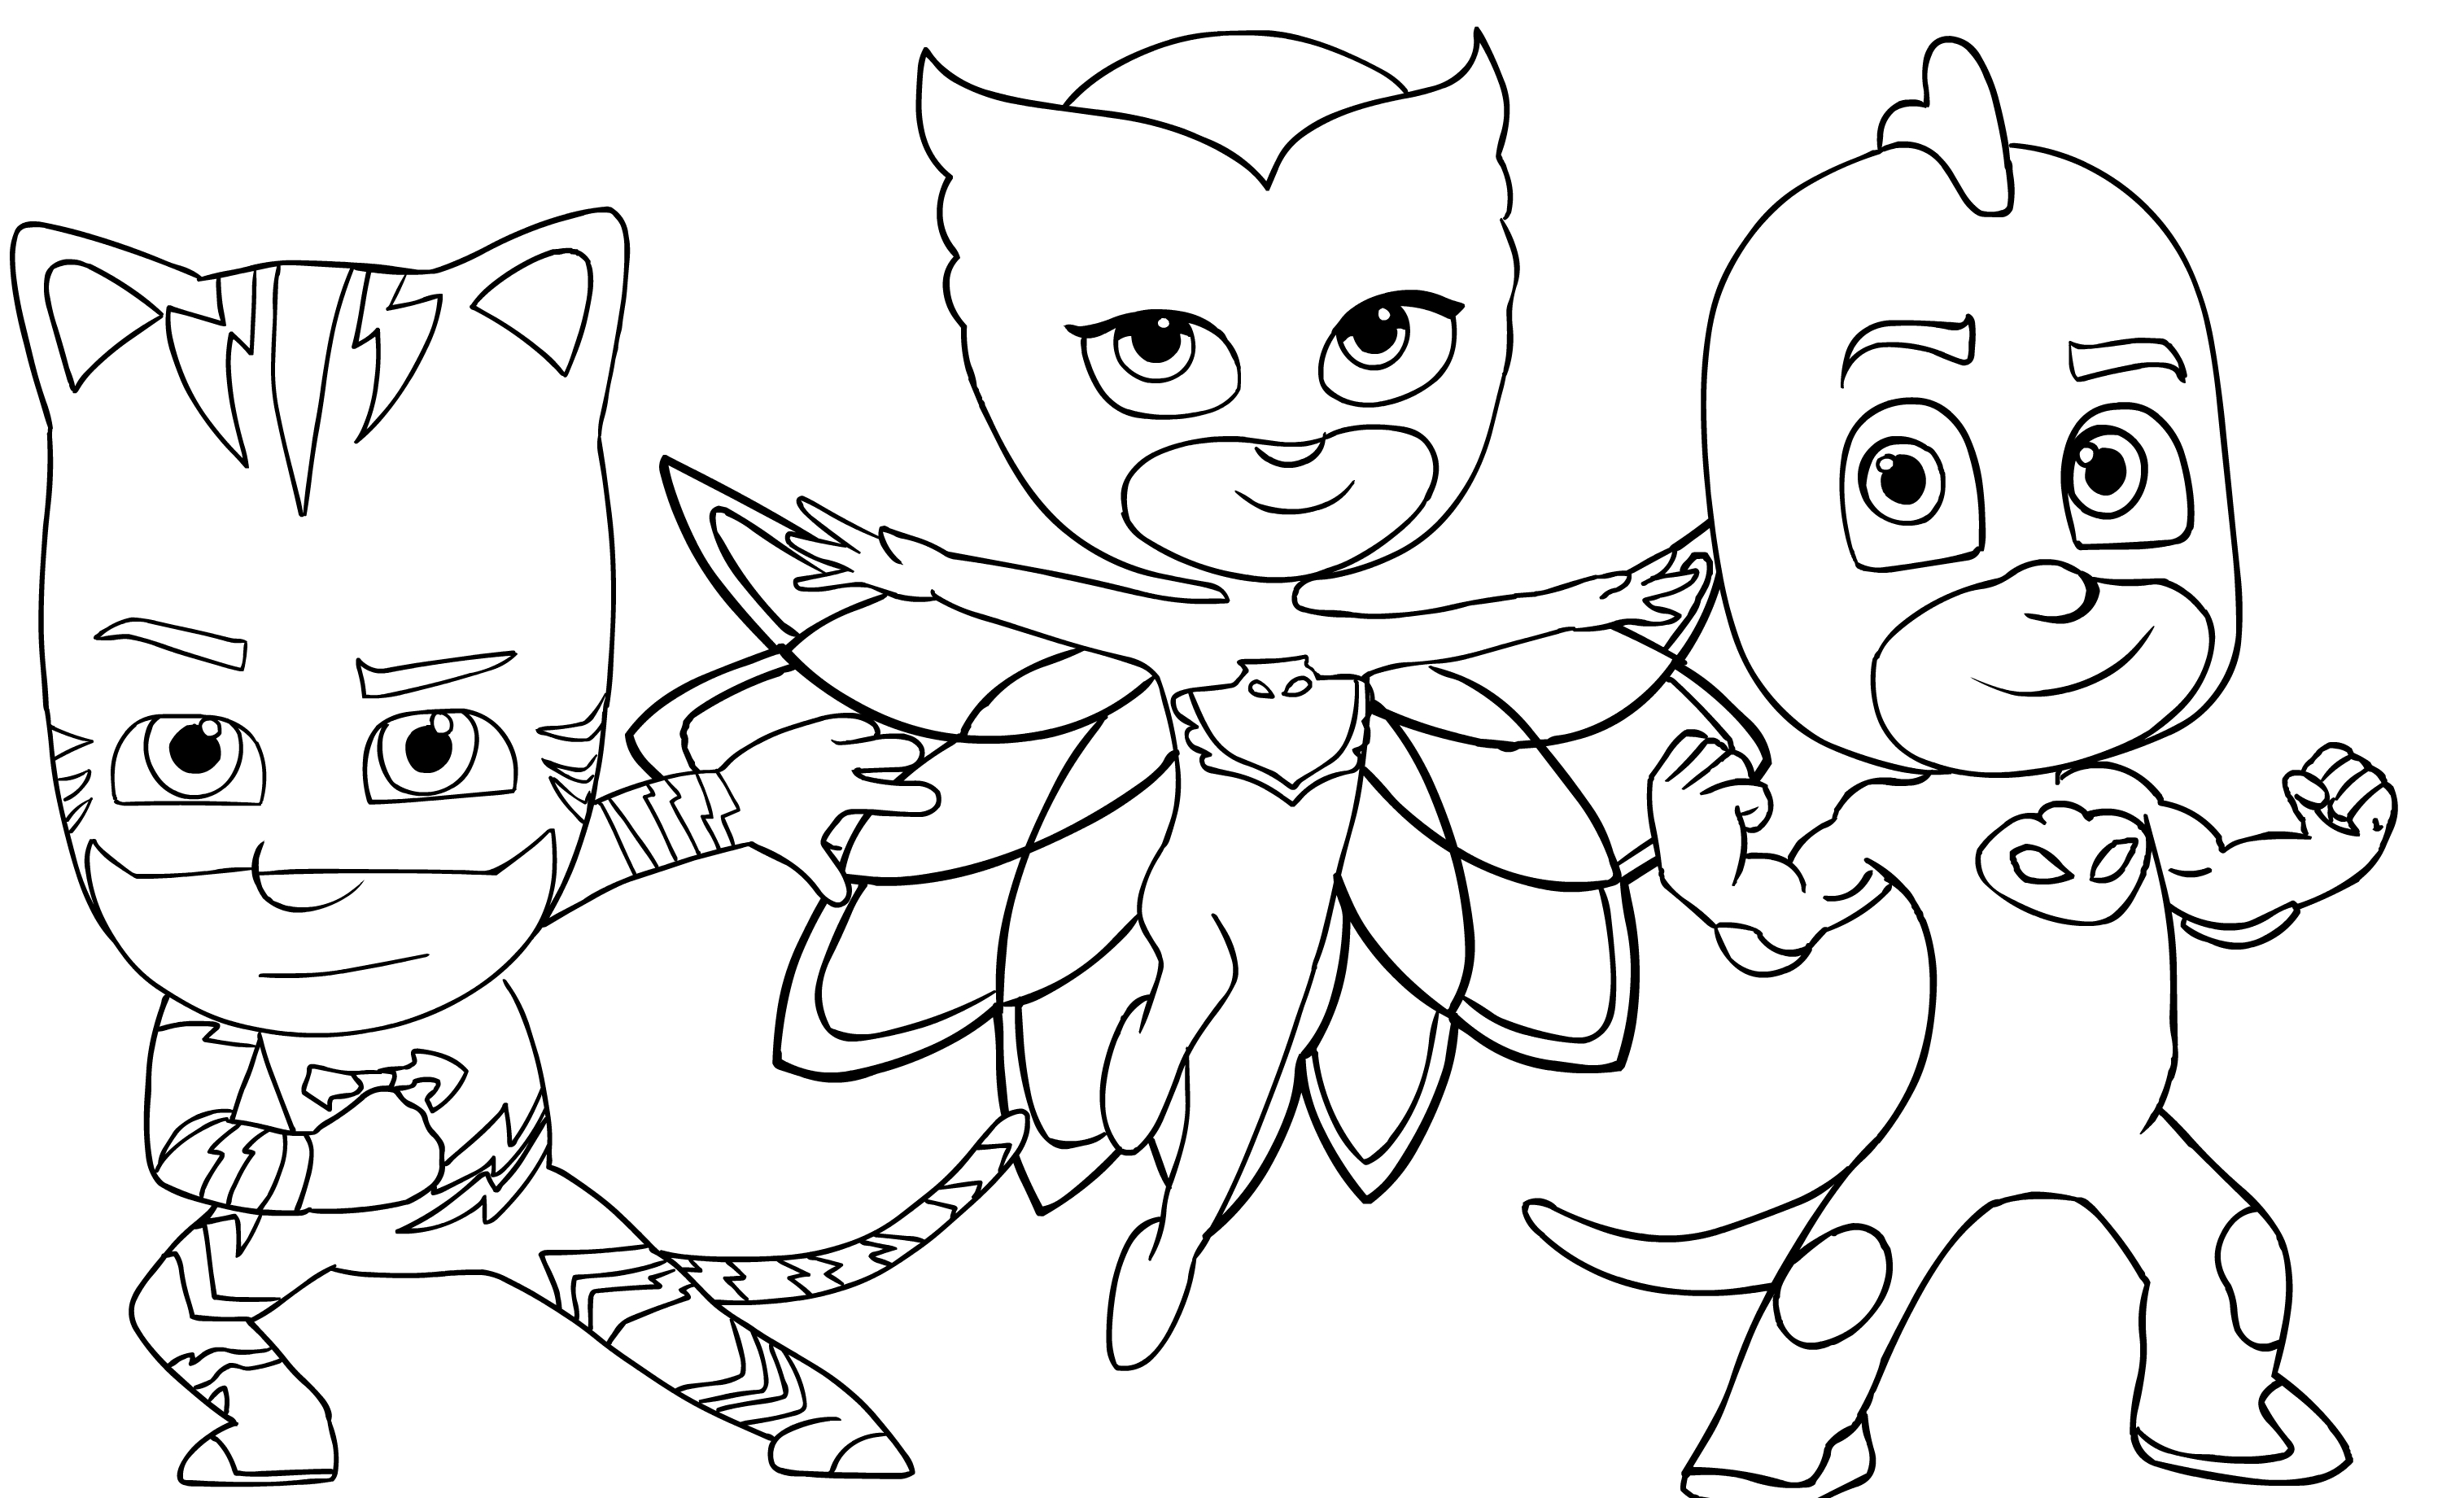 pj masks to colour state theatre new jersey official site pj to masks colour